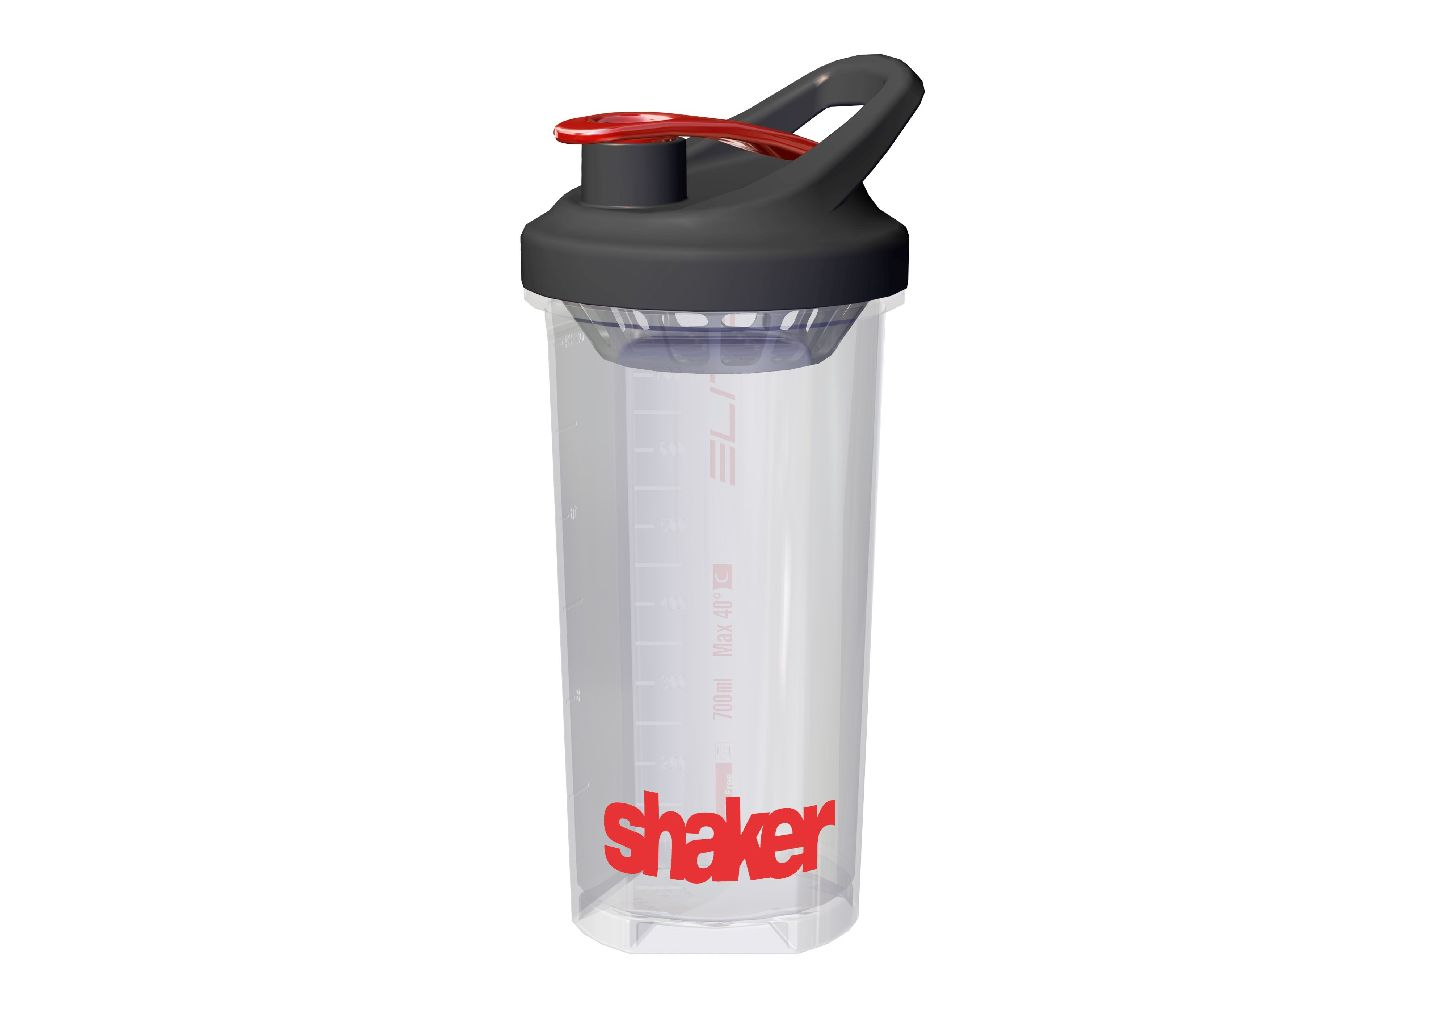 ELITE Flasche SHAKER 700ml - Bikedreams & Dustbikes